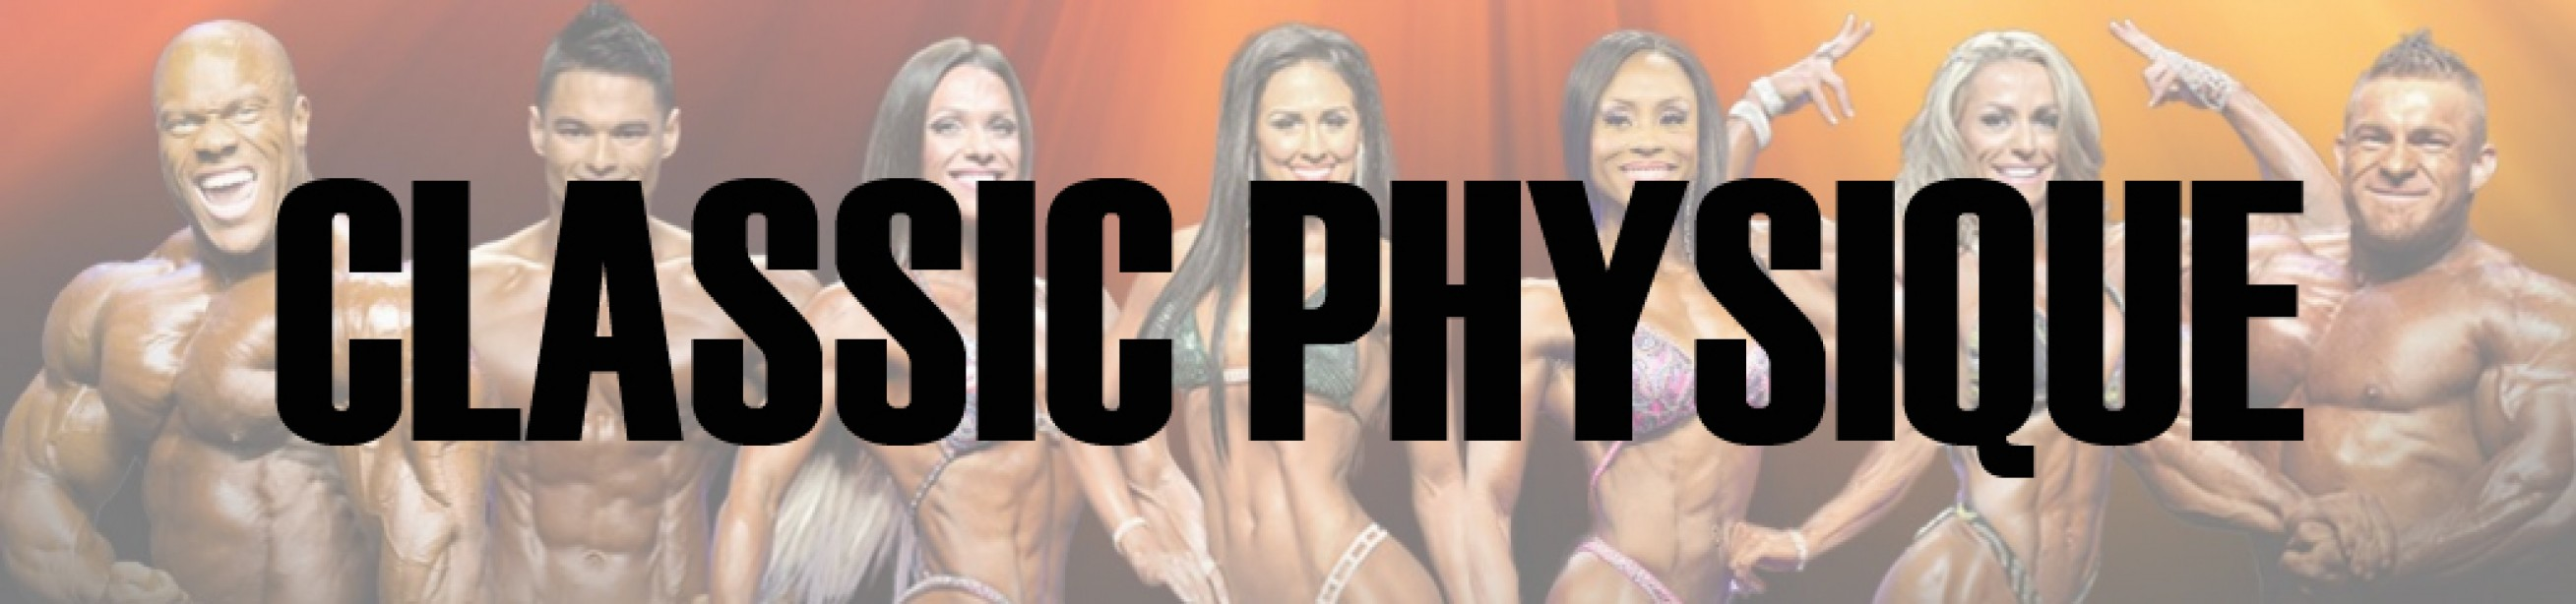 2016 Olympia Classic Physique Call Out Report